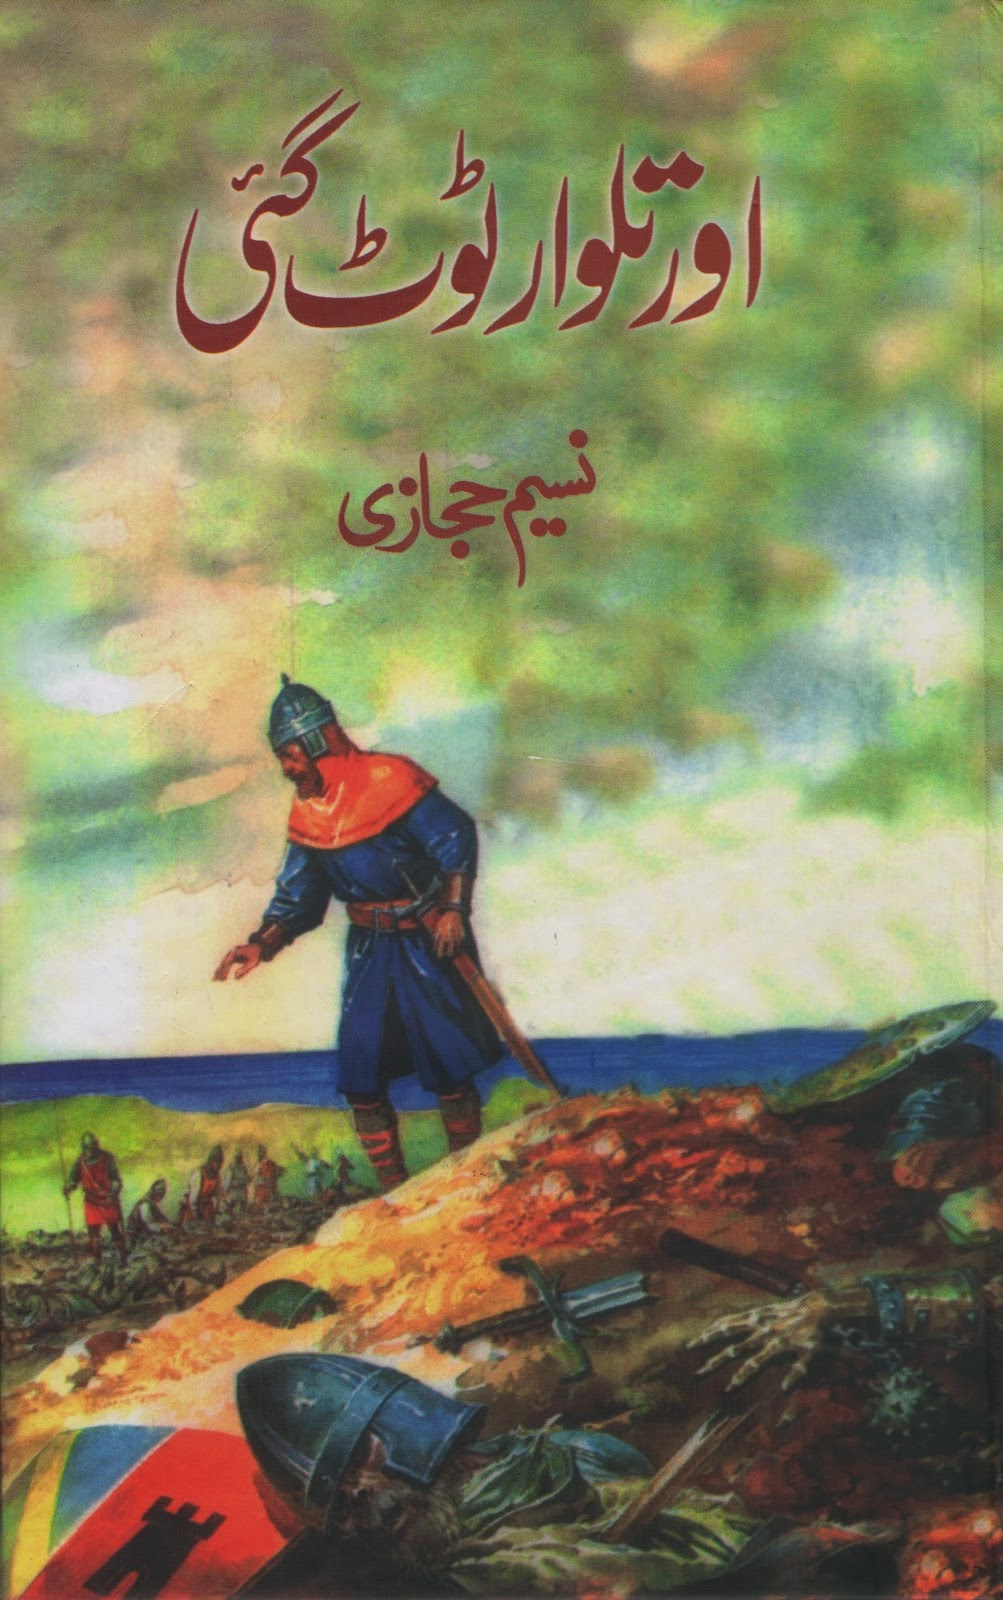 Aur Talwar Toot Gai Novel Written by Naseem Hijazi in Pdf